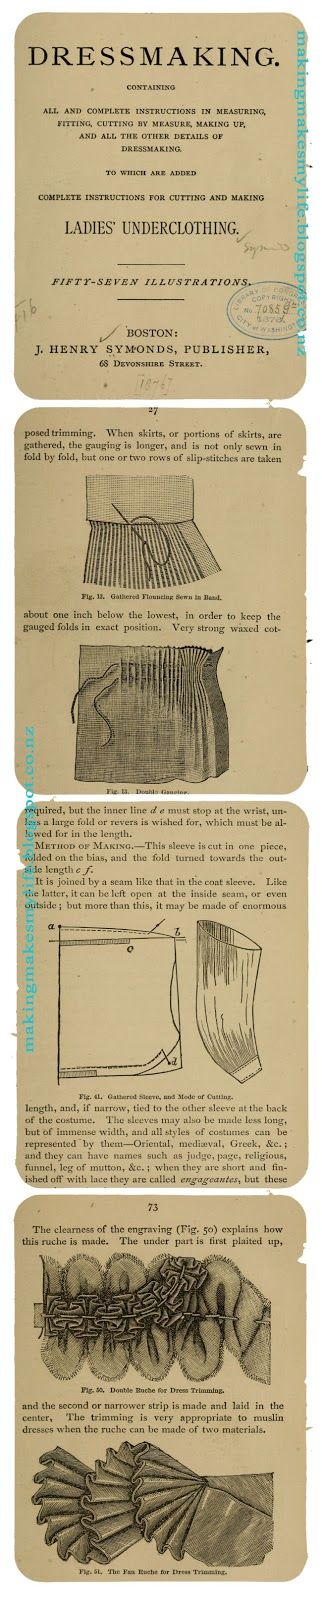 "Making Makes My Life: Book Review : ""Guide to dress making"" by J Henry Symonds (published 1876). Actual link to download"